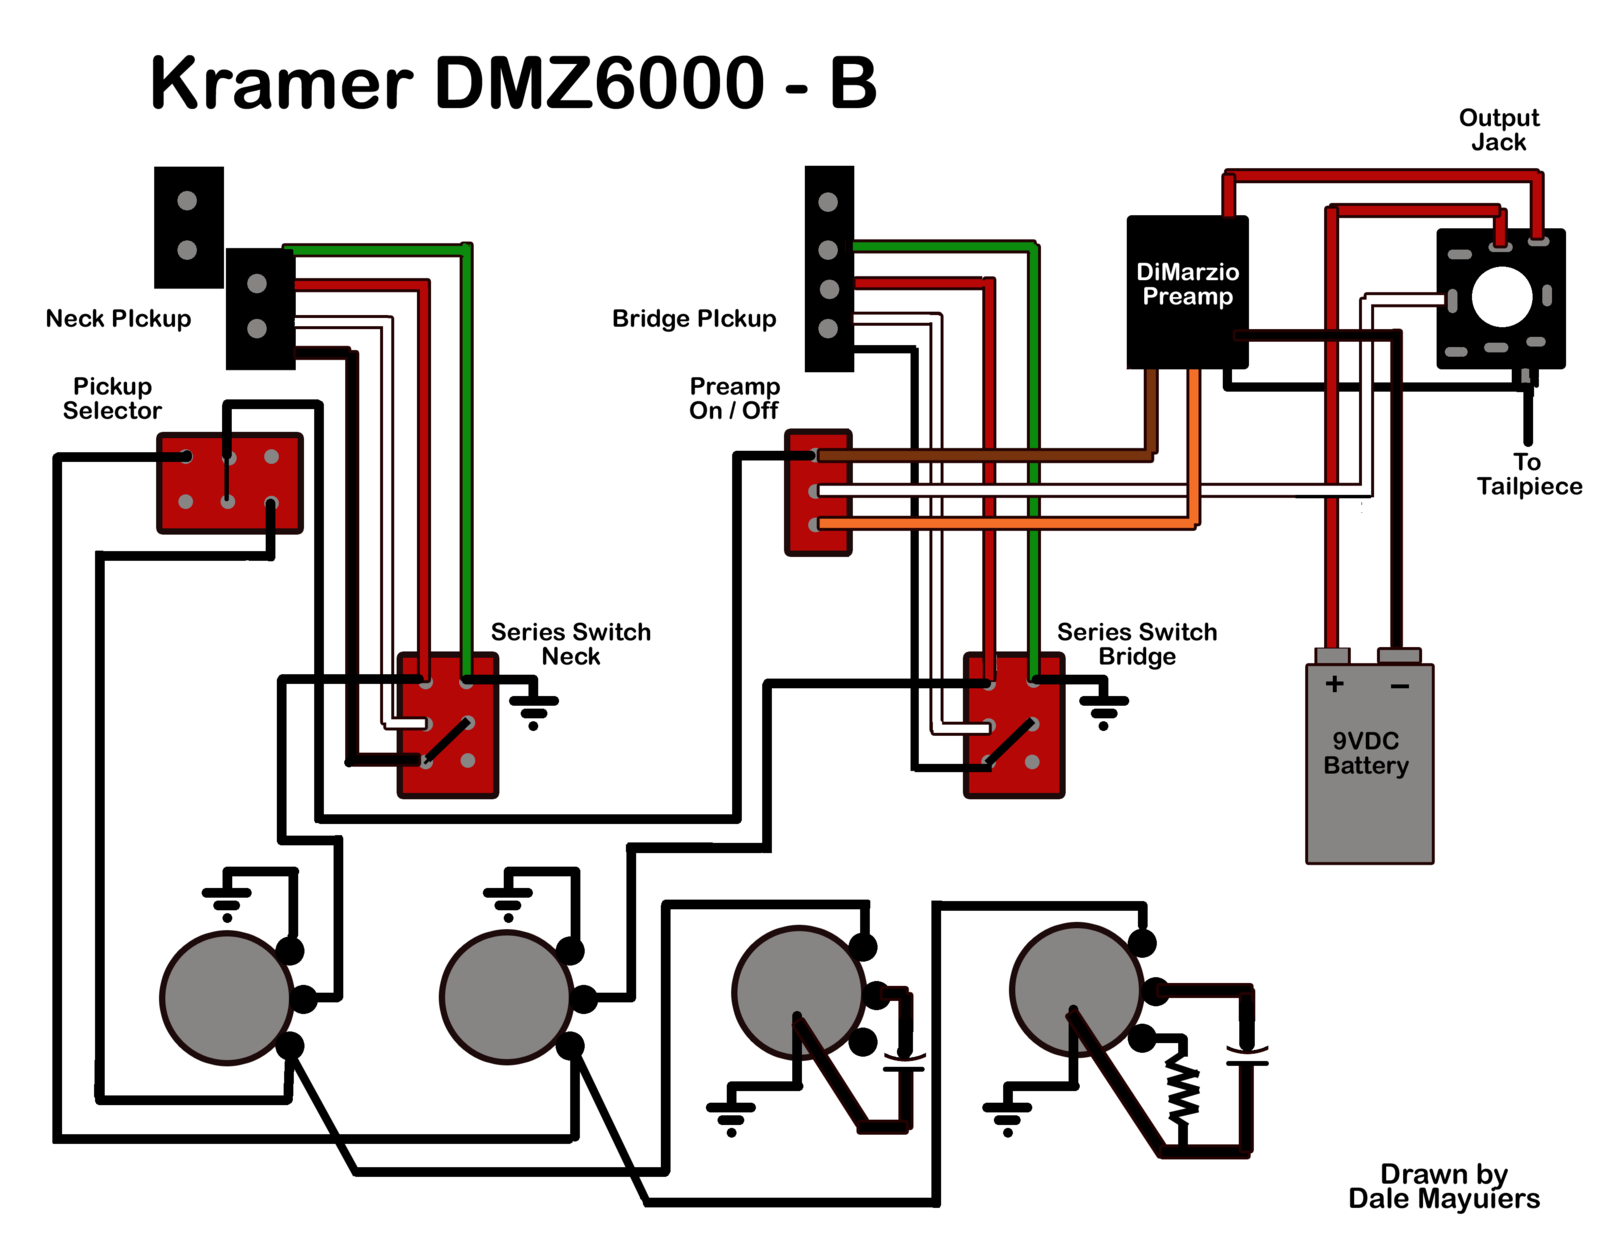 kramer dmz6000 wiring diagram with dimarzio preamp talkbass com Power Supply Wiring Diagrams